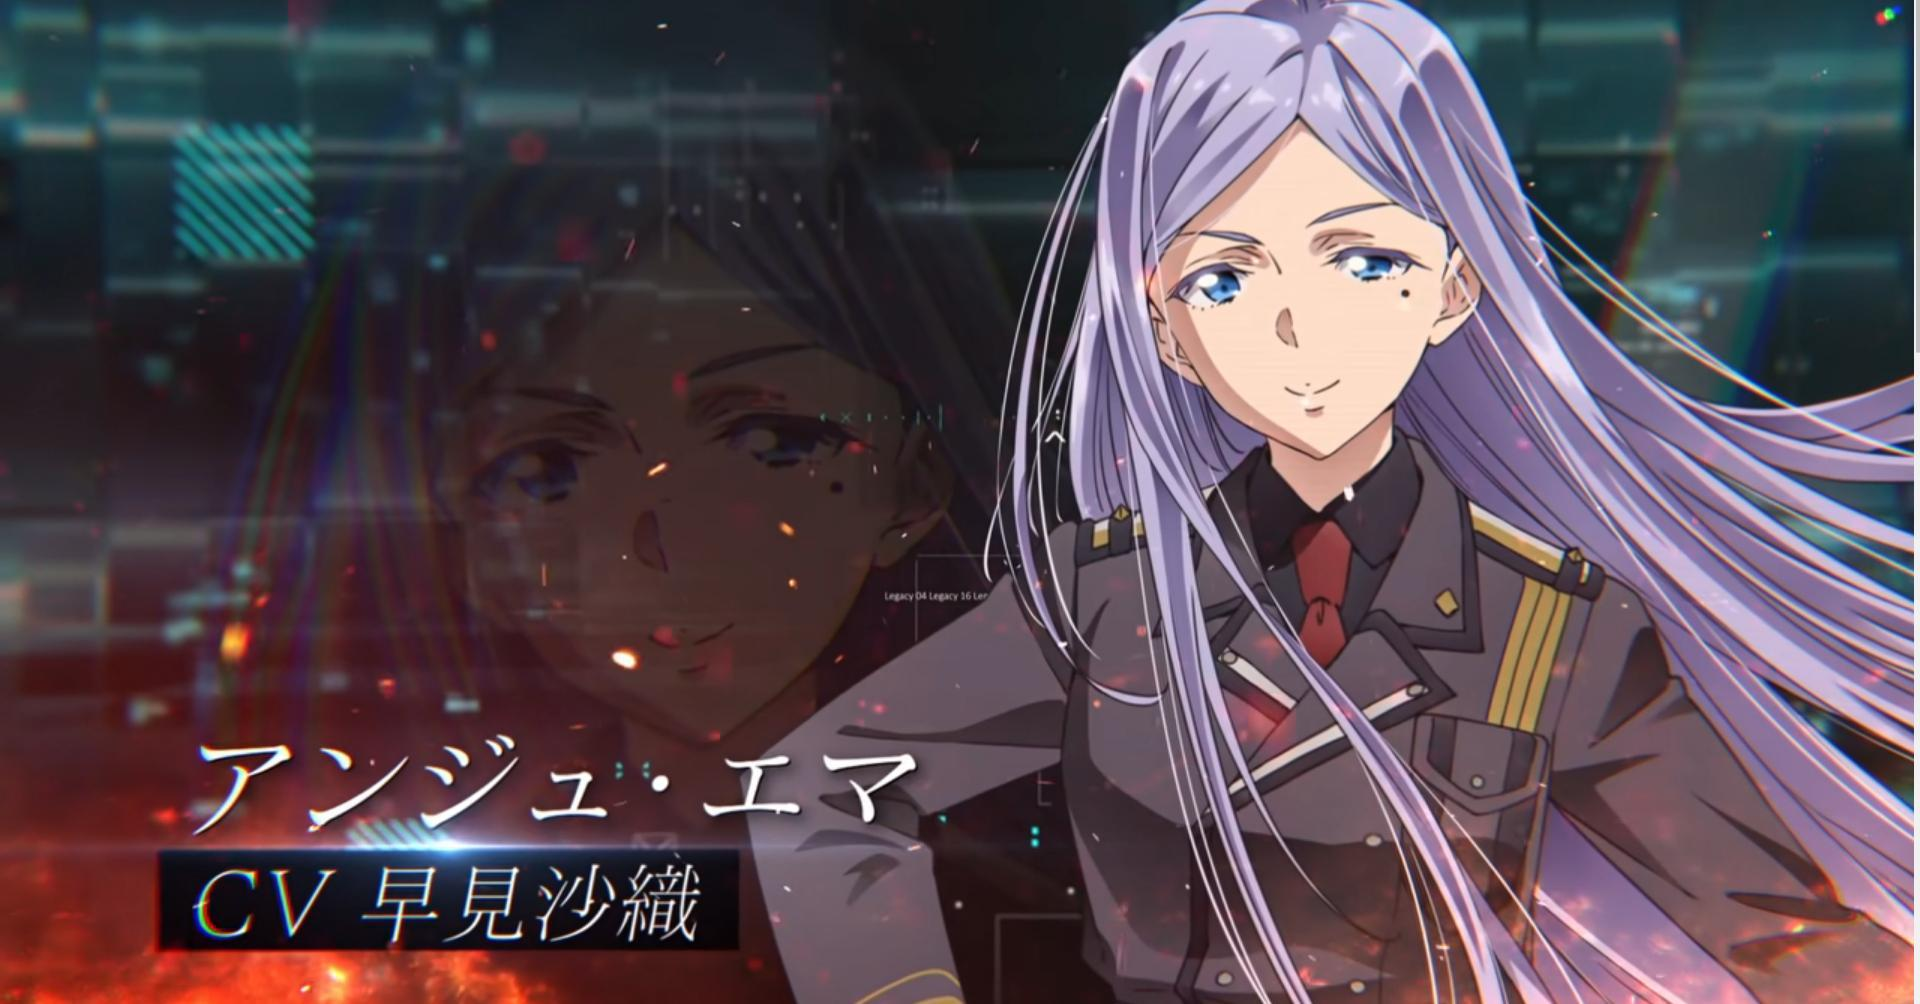 86 Eighty Six: Cour 2 New PV Focuses on the 'Snow Witch' Anju Emma